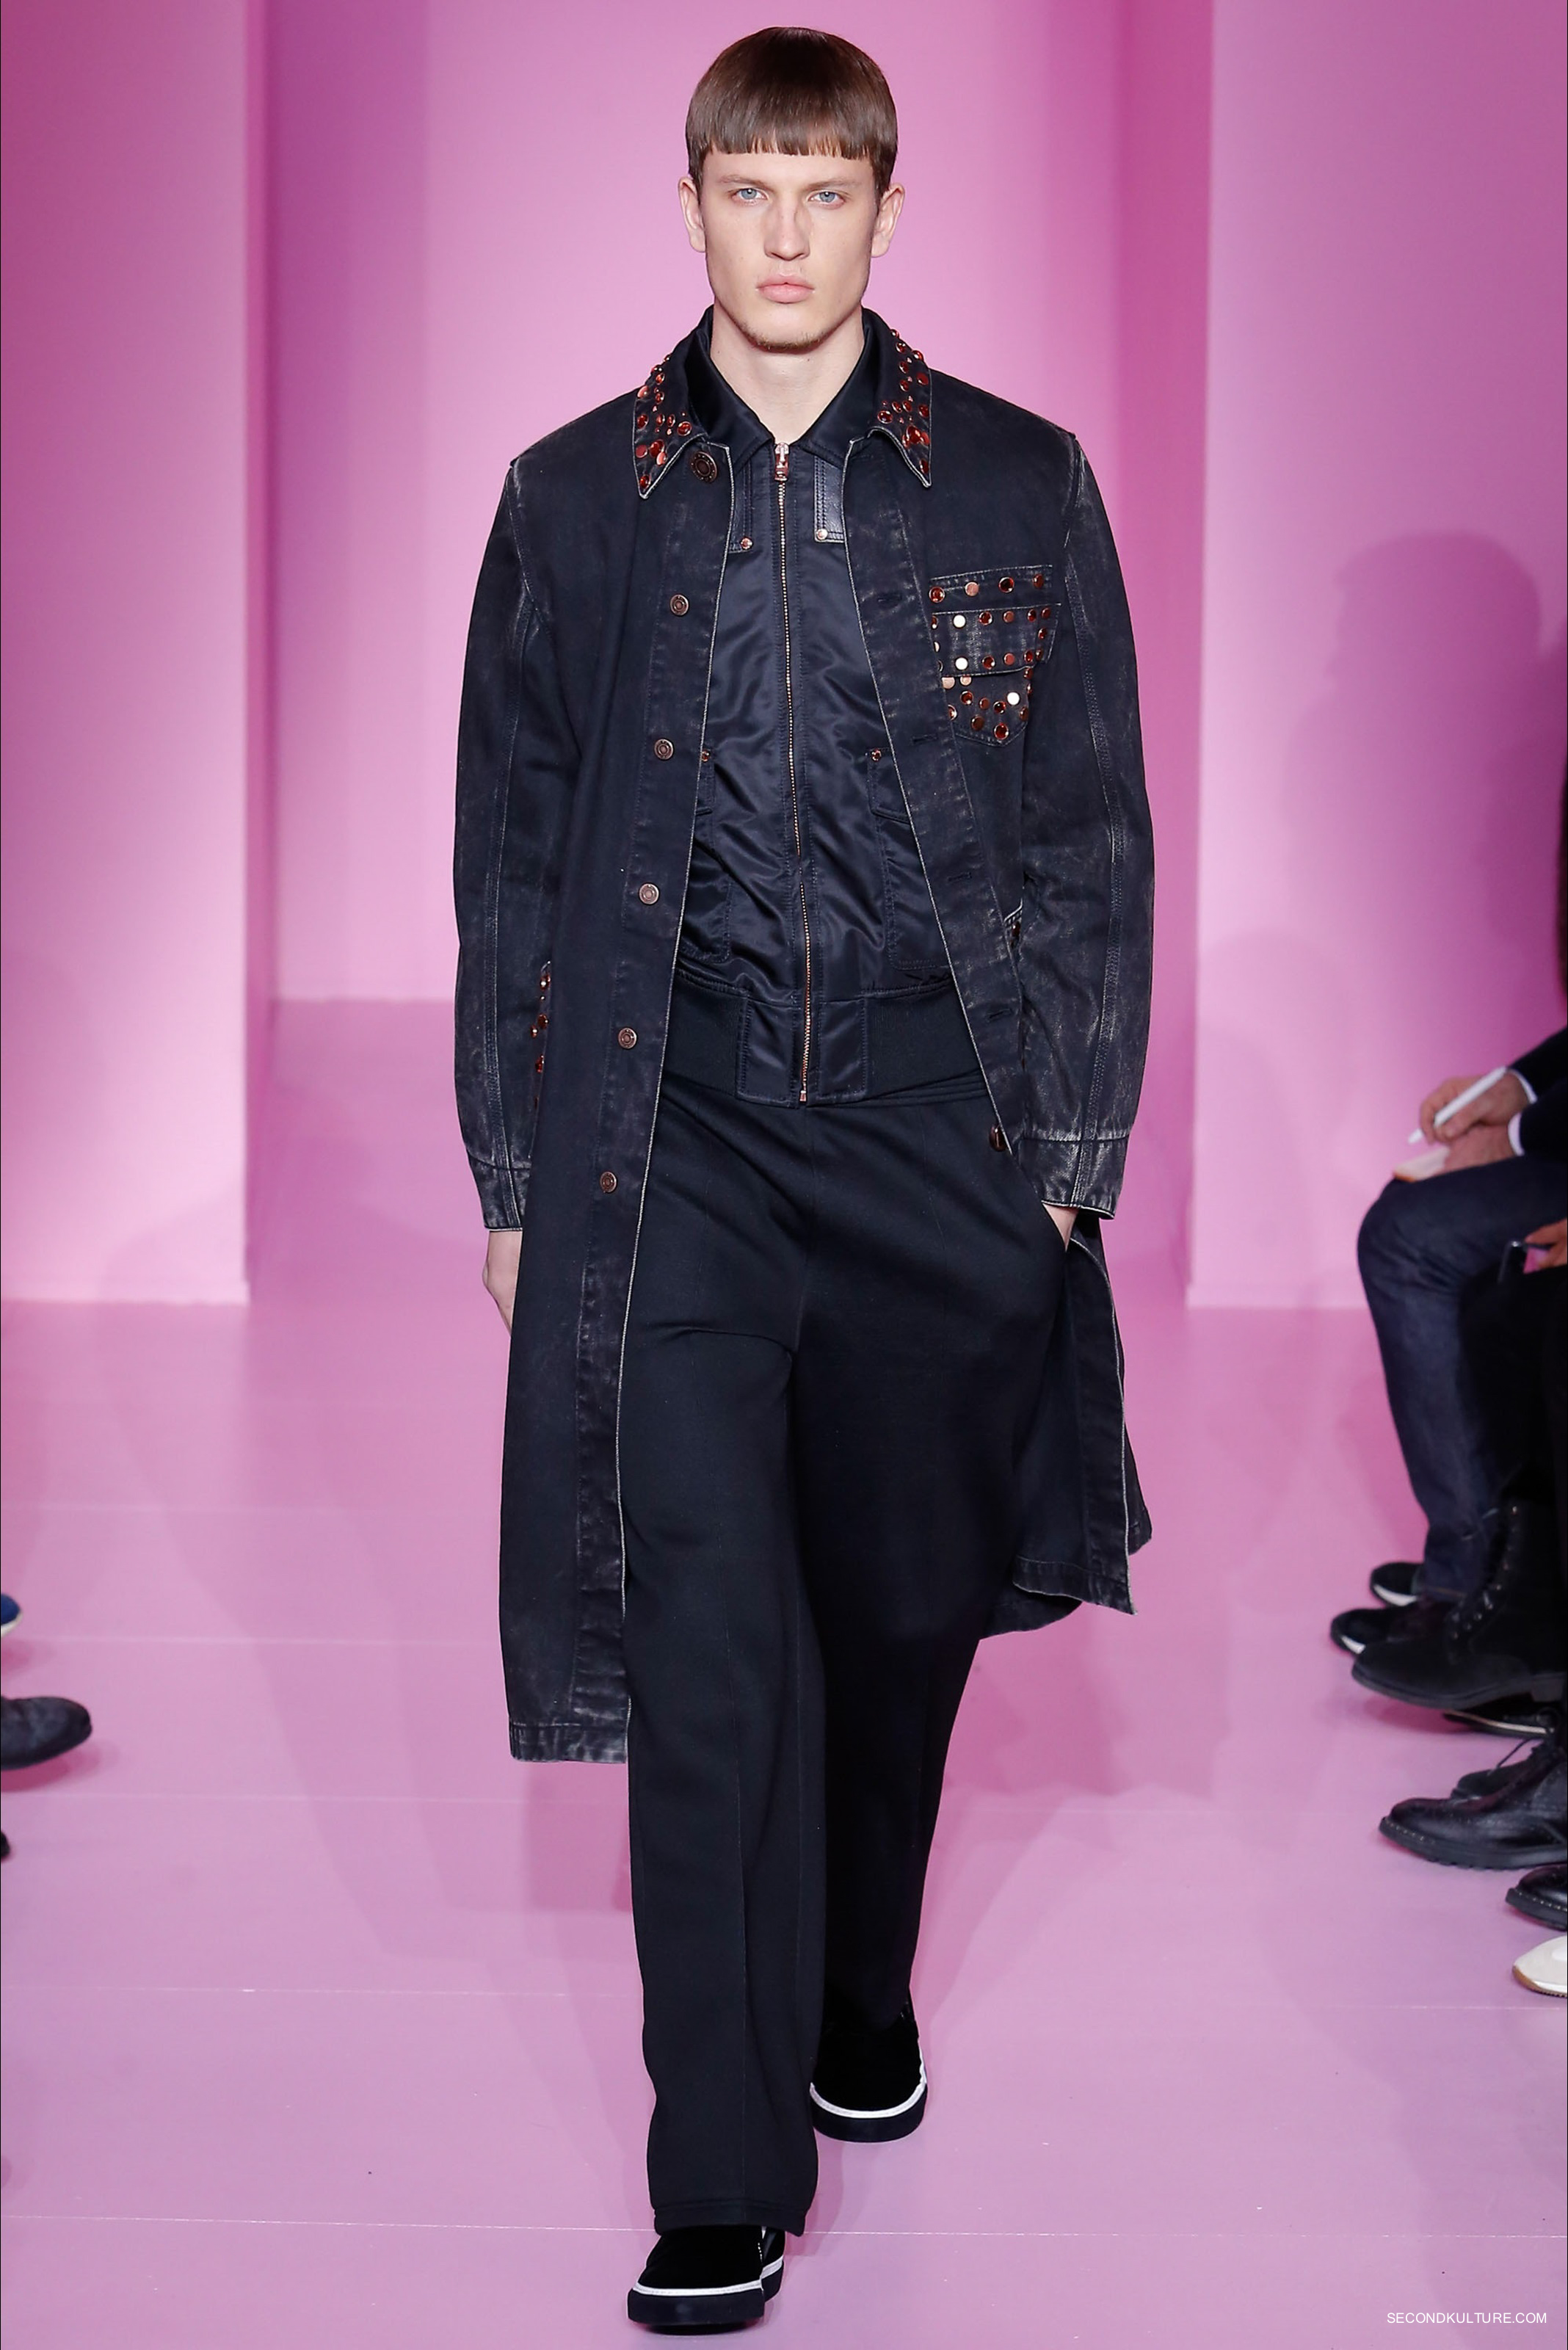 Givenchy Fall Winter 2016 FW16 AW16 Menswear